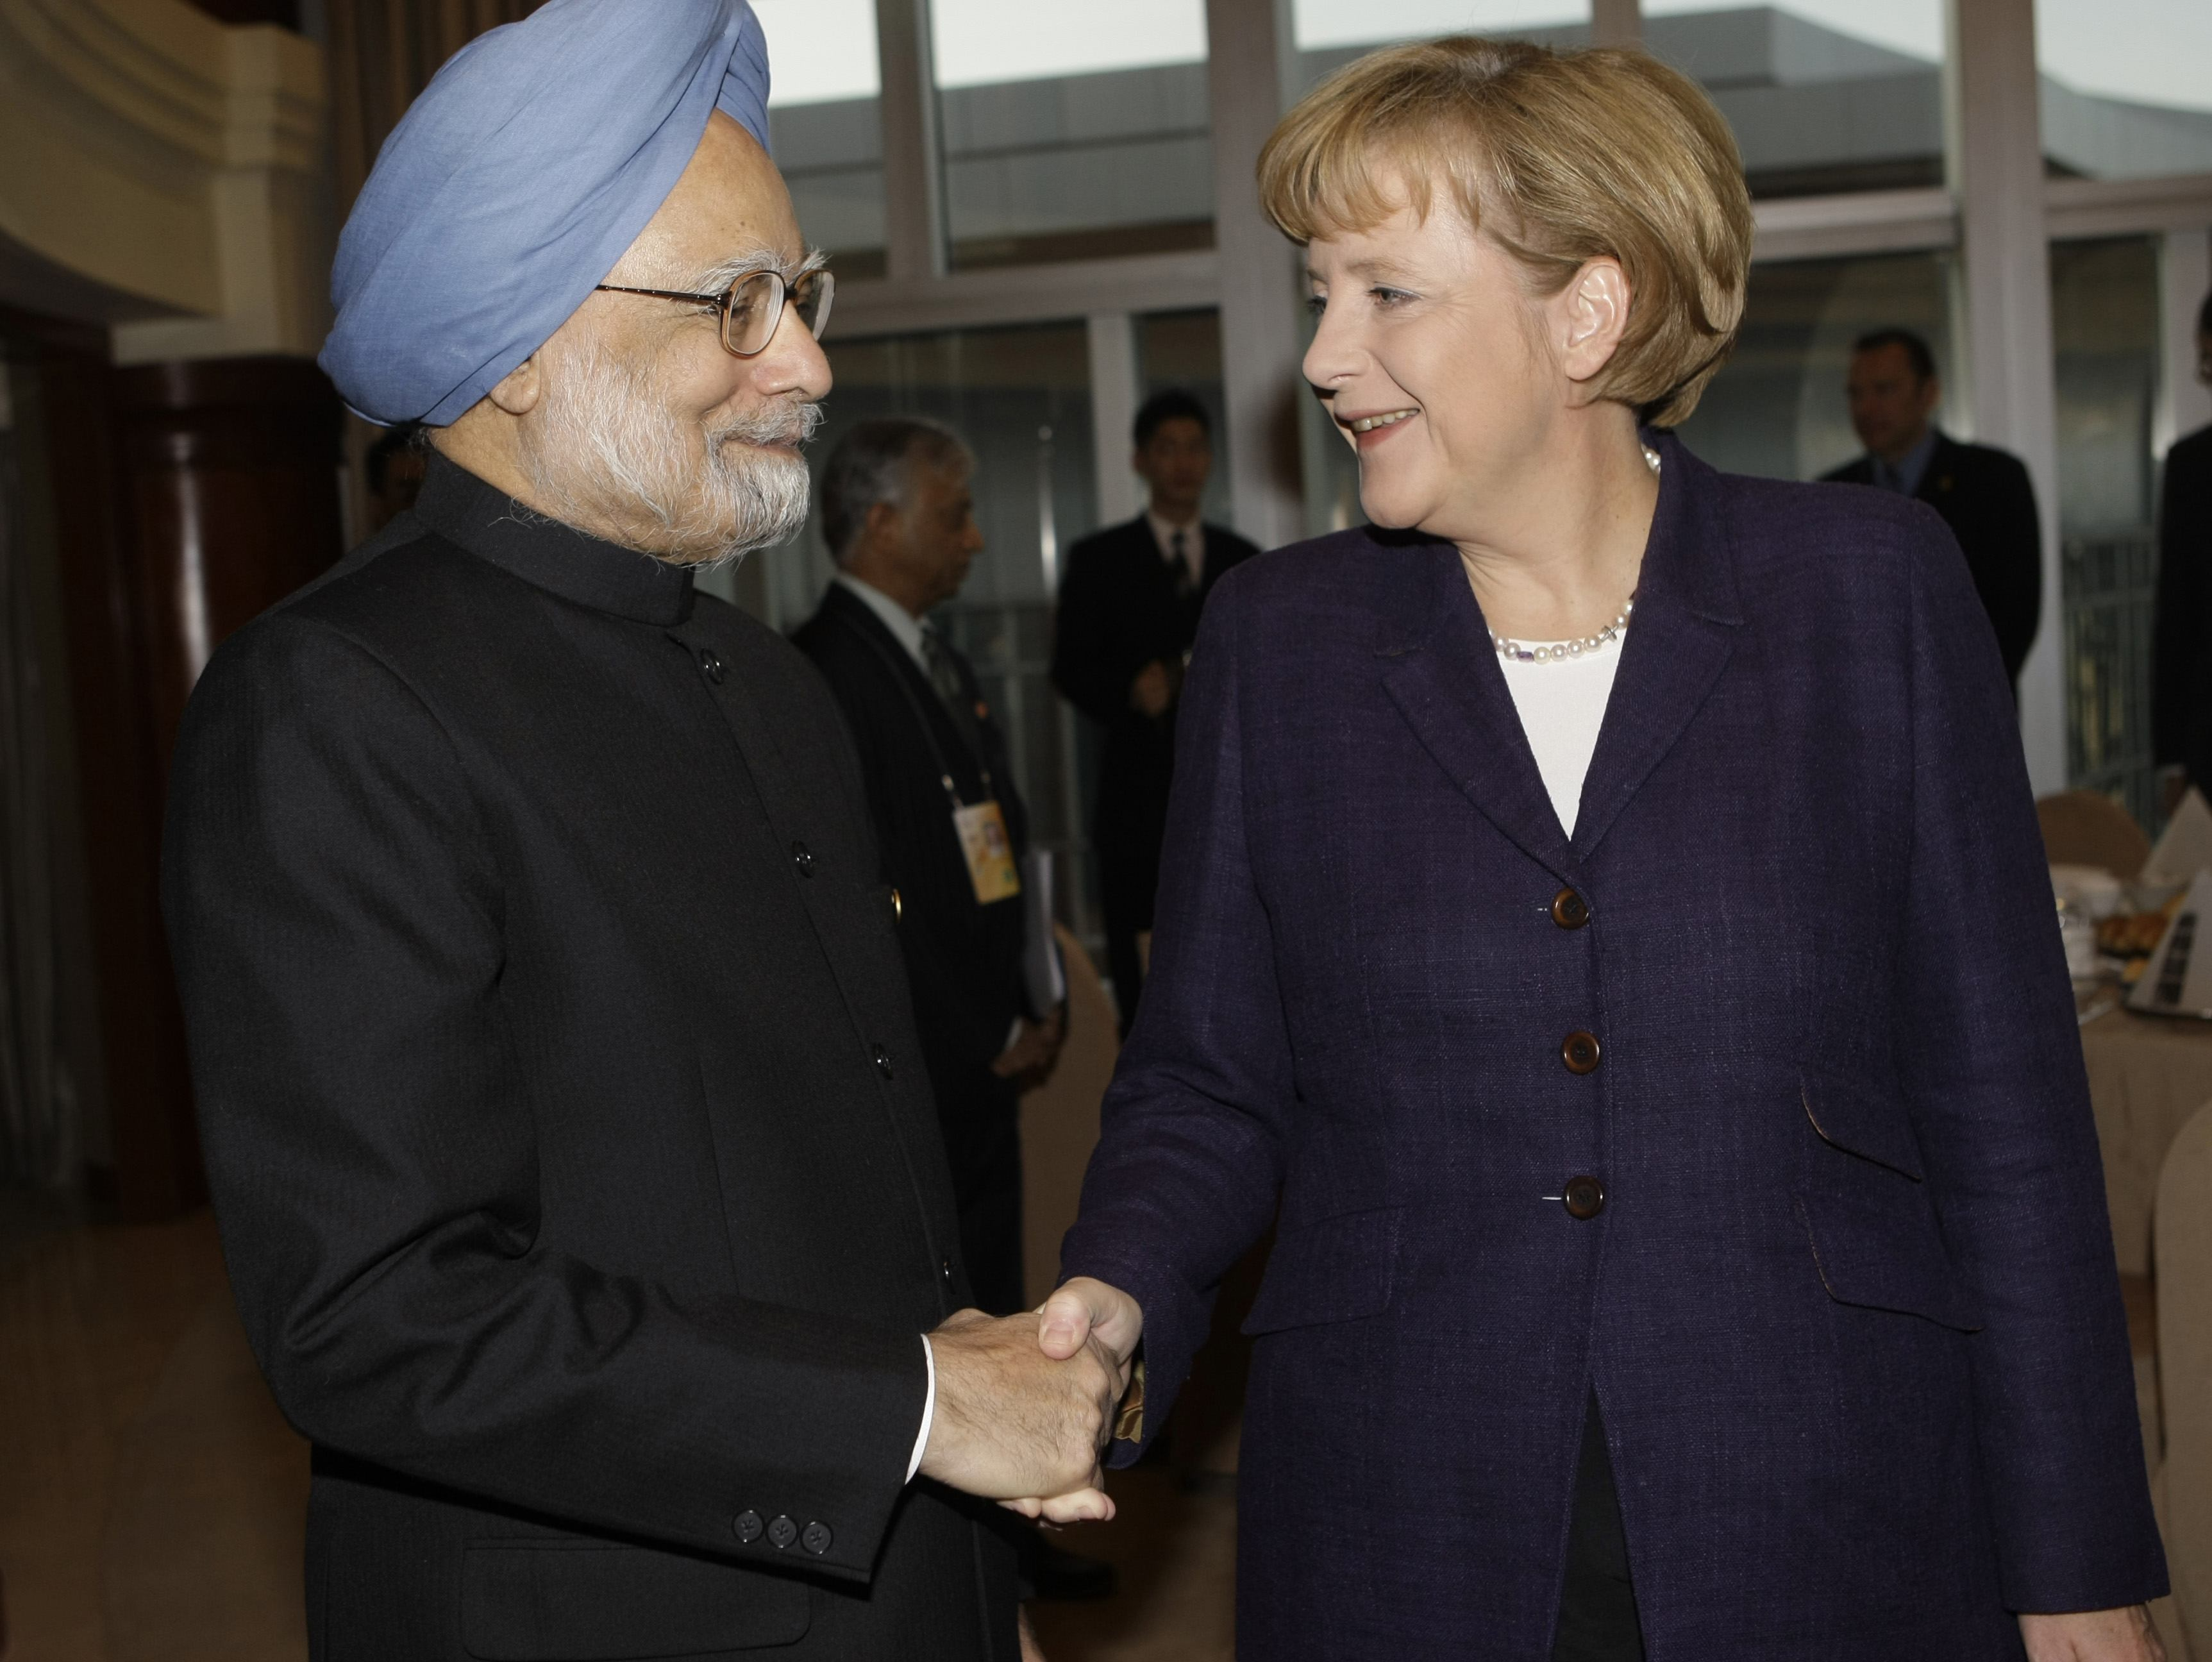 India's Prime Minister Manmohan Singh, left, shakes hands with German Chancellor Angela Merkel before a breakfast at a hotel during the Asia-Europe Me...